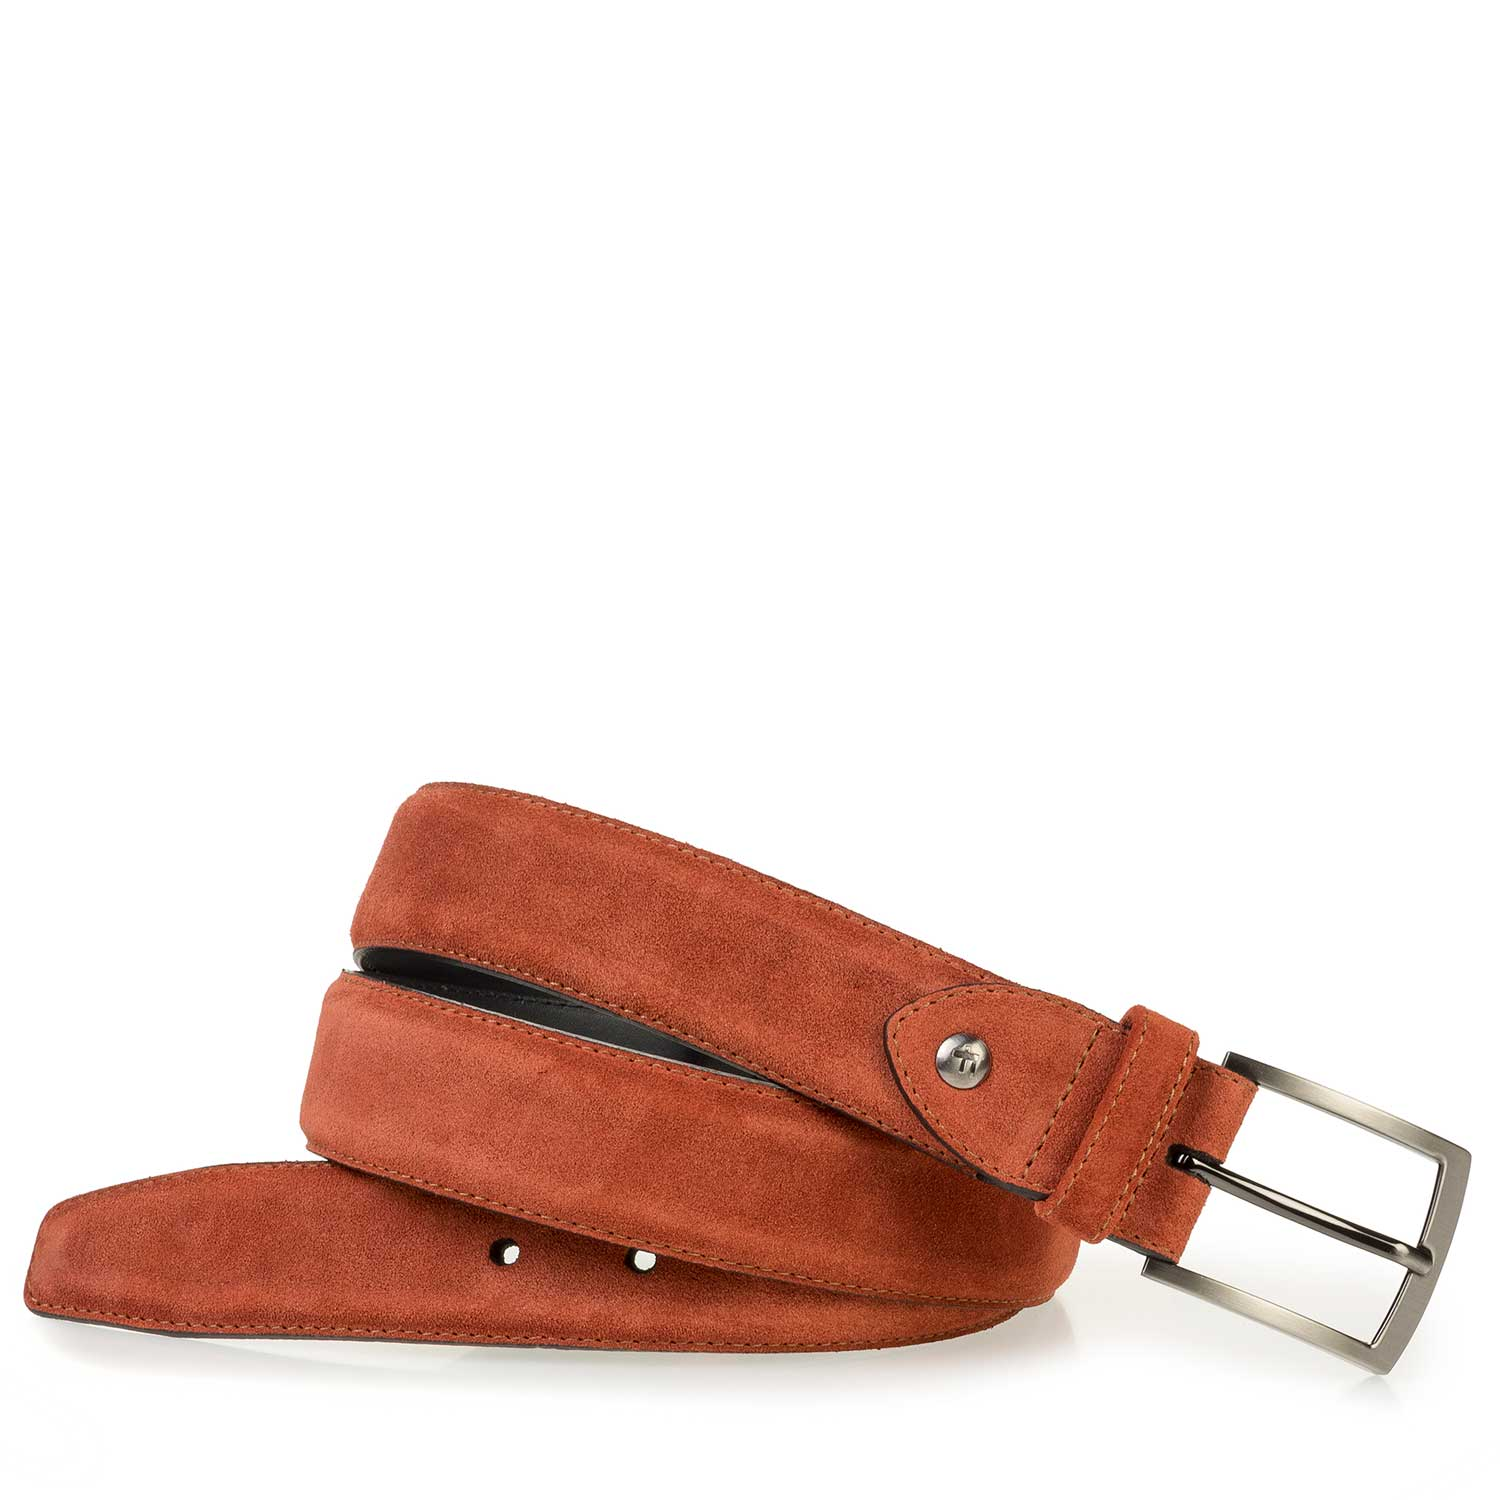 75200/45 - Orange and red belt made of waxed suede leather